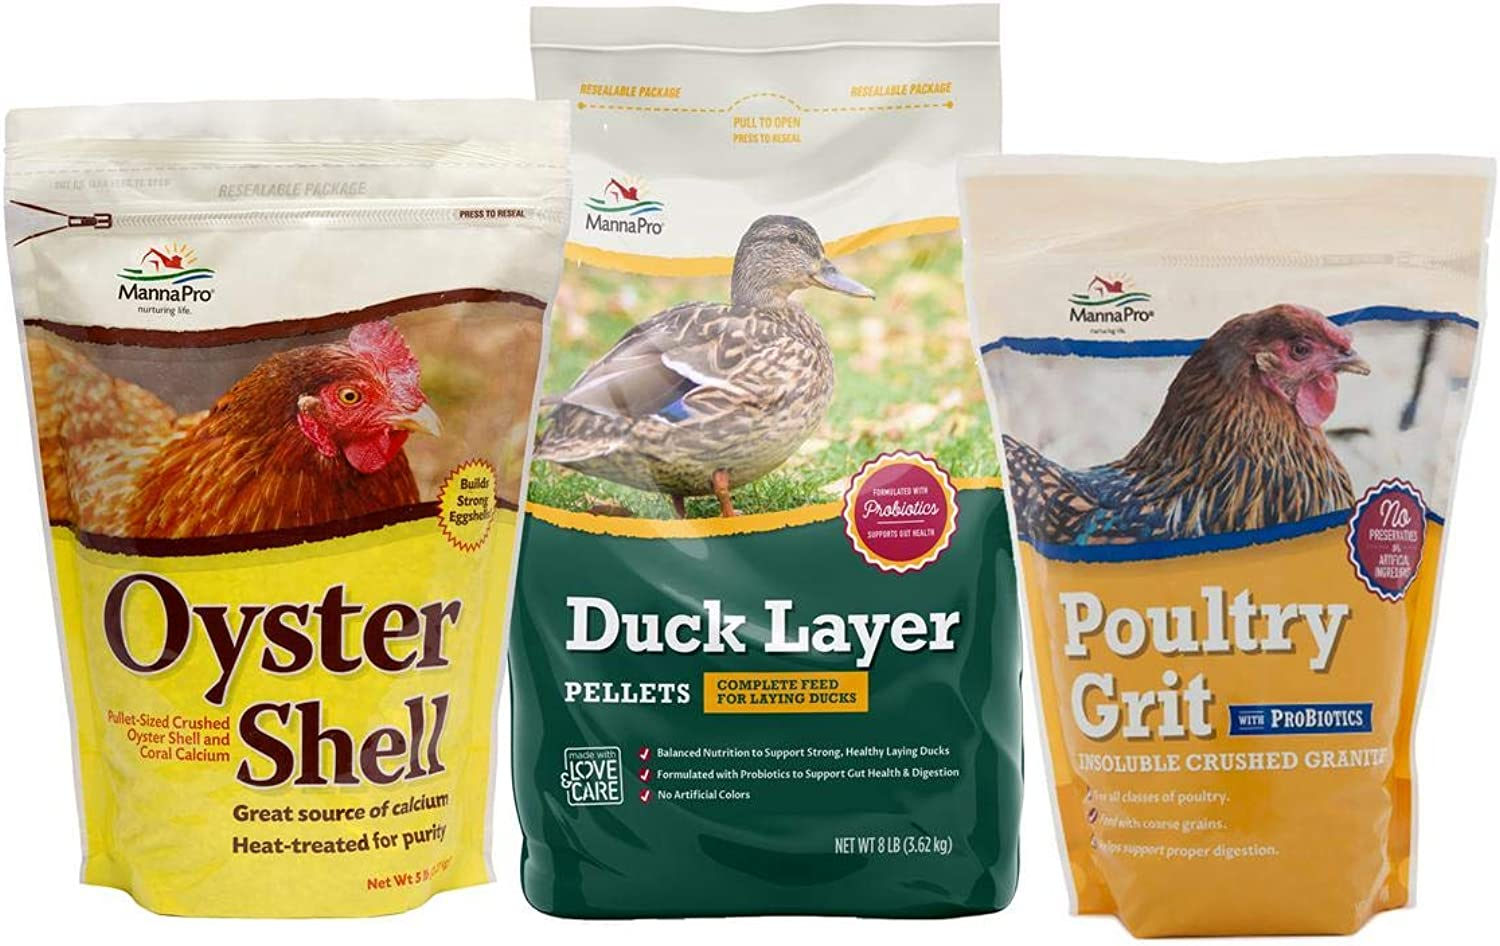 Manna Pro Duck Variety Pack, Contains Oyster Shell, Duck Layer, and Poultry Grit